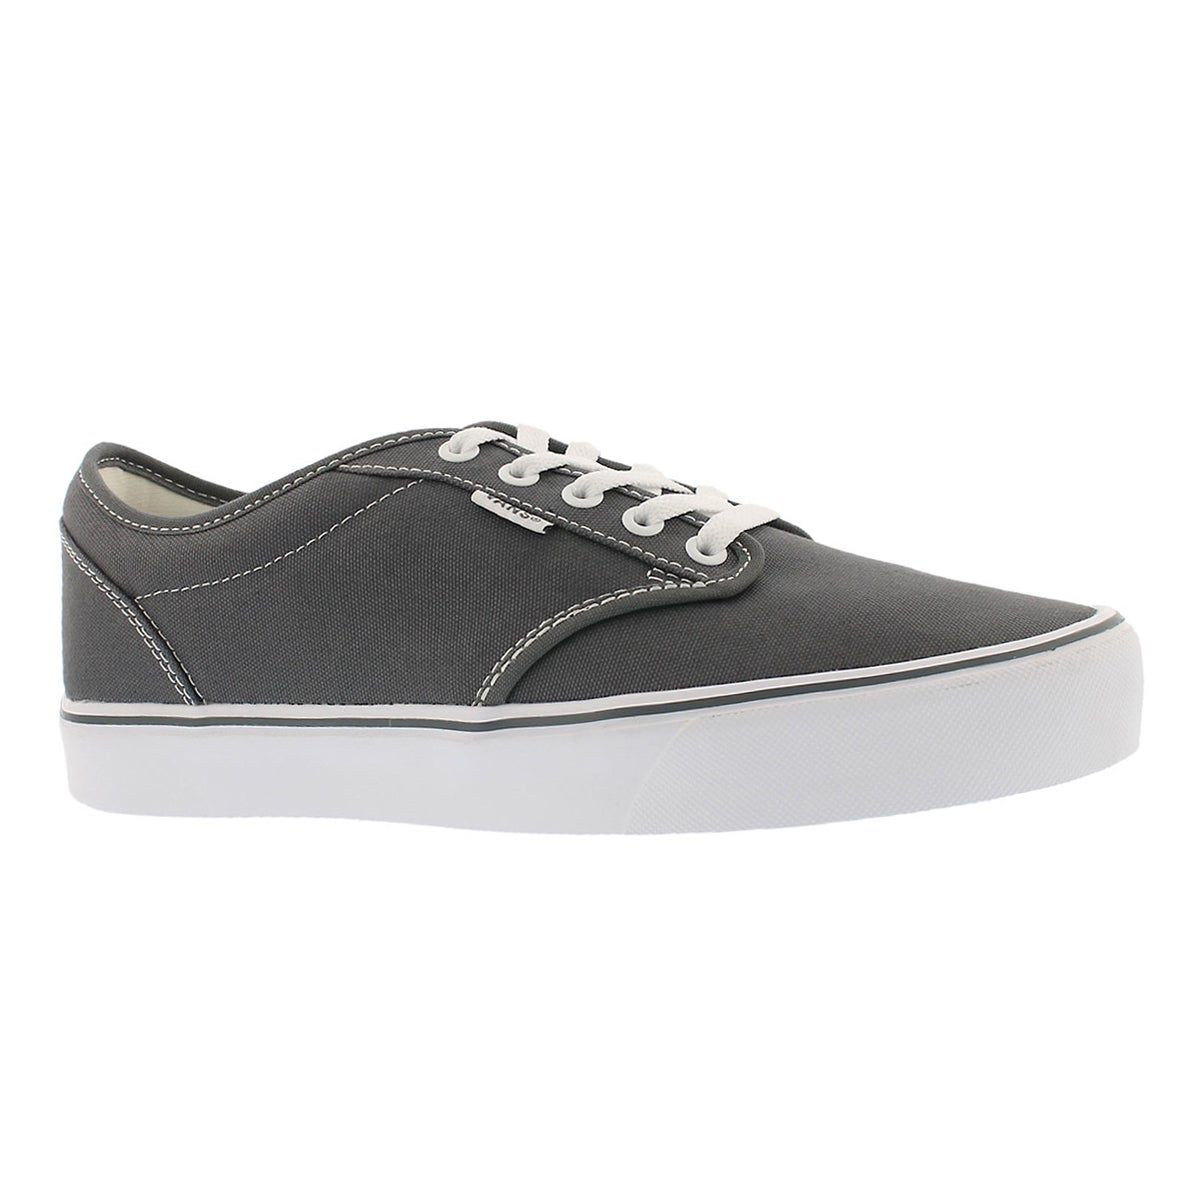 Men's ATWOOD LITE pewter lace up sneakers